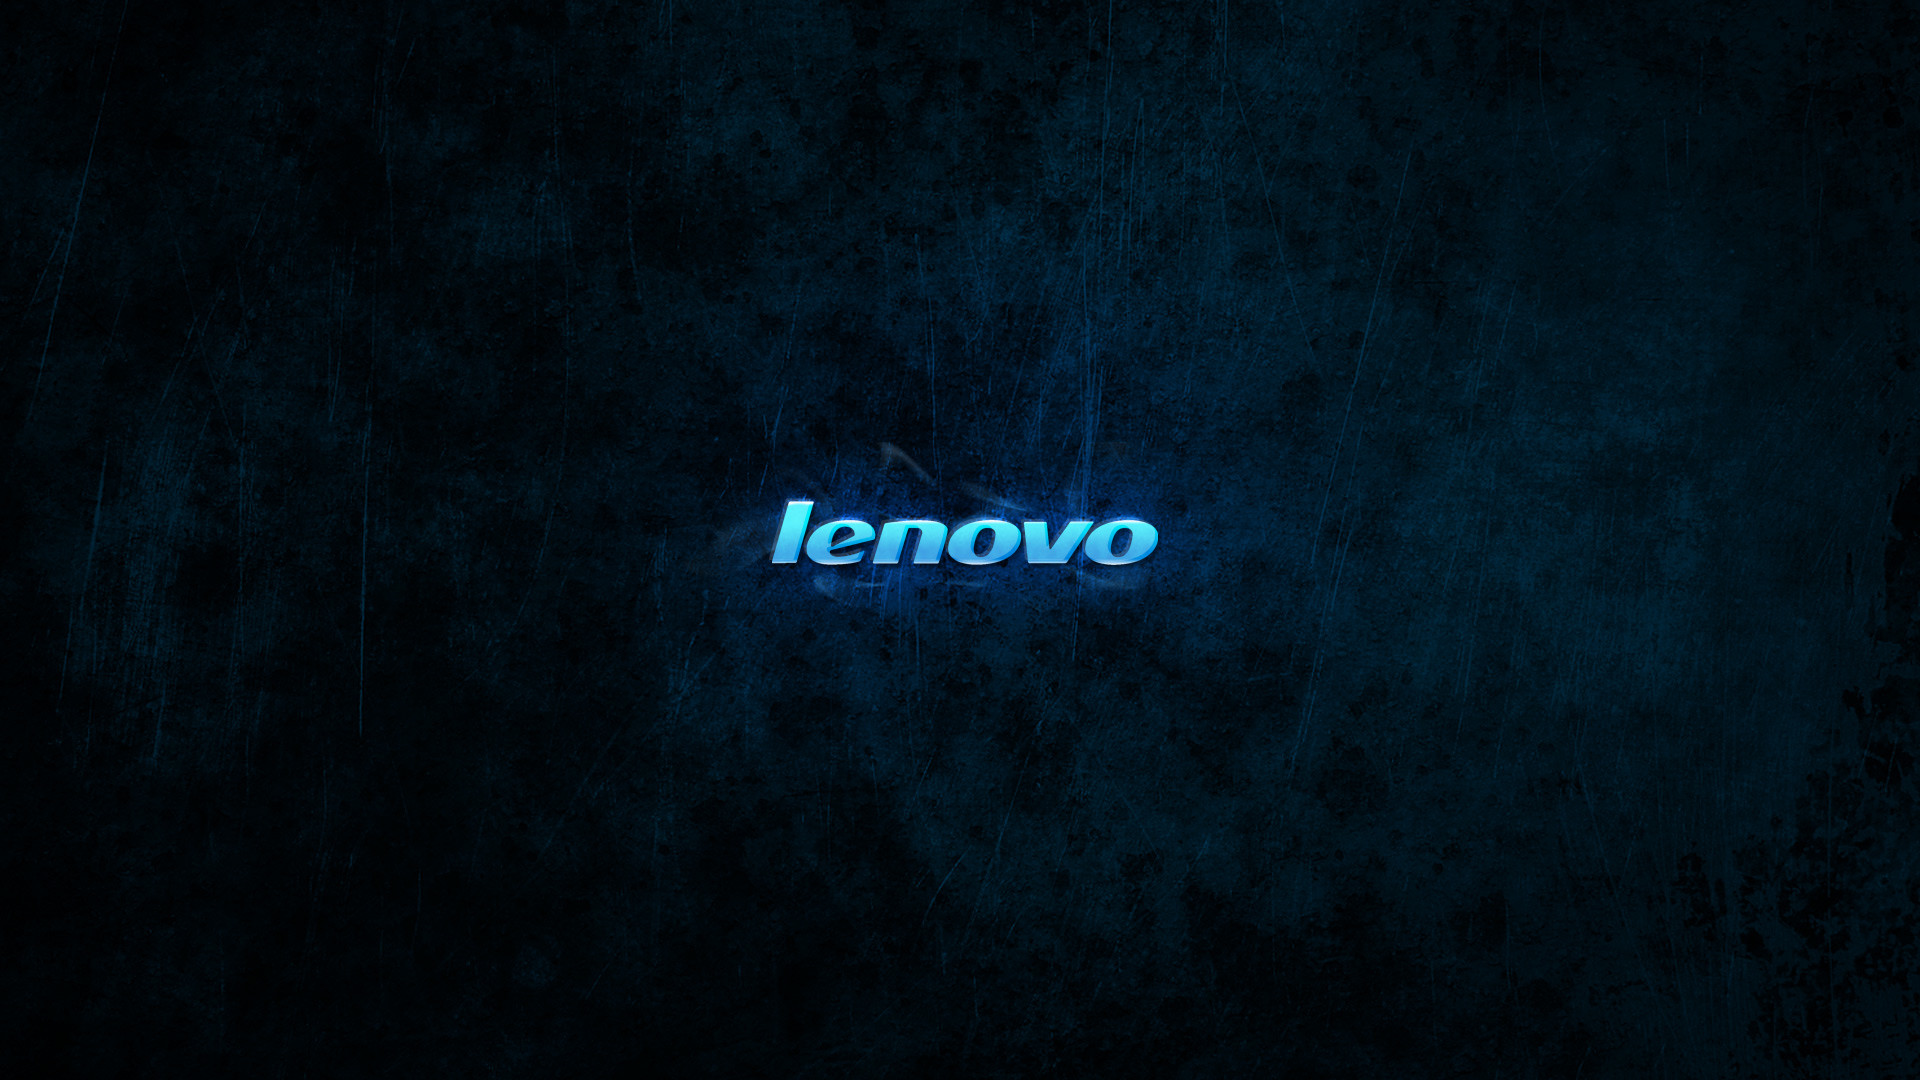 Download Lenovo Windows 8 Wallpapers pictures in high definition or .